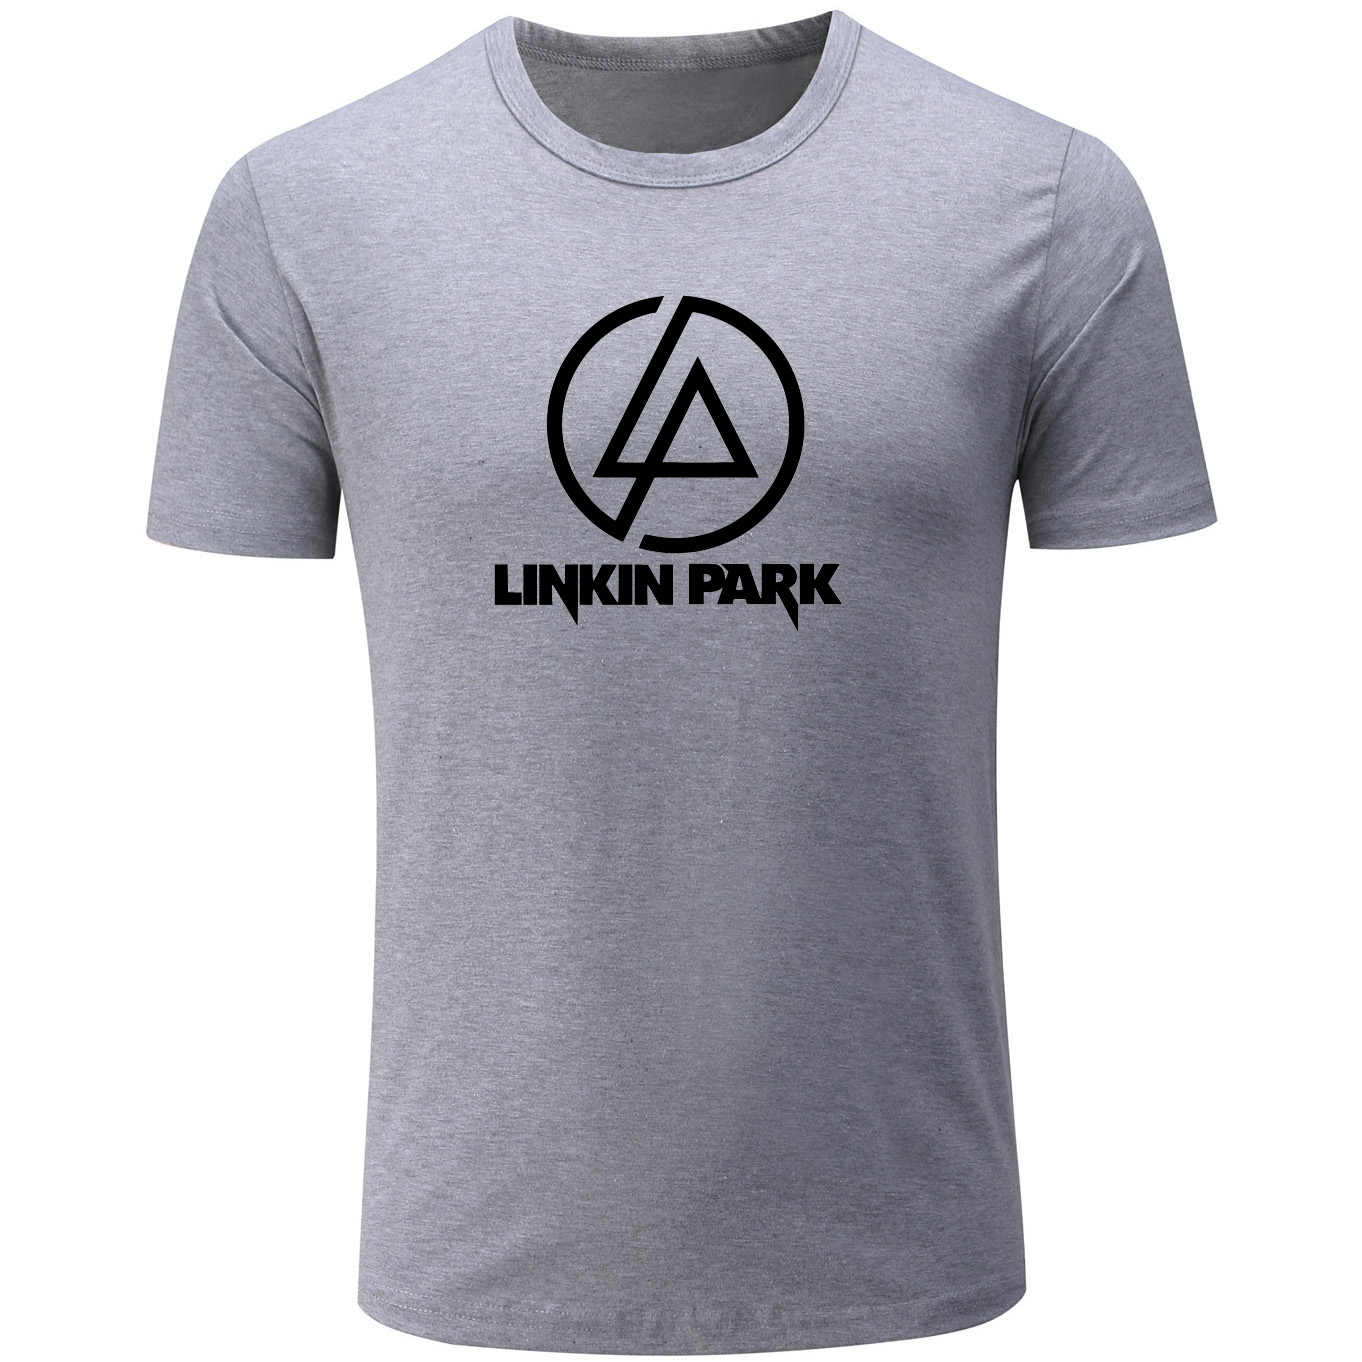 New Linkin Park Symbol Fitness T Shirt Men Women Cool Rock T Shirt Short Sleeve Girls Boys Tshirts Hip Hop Tops Streetwear Tops